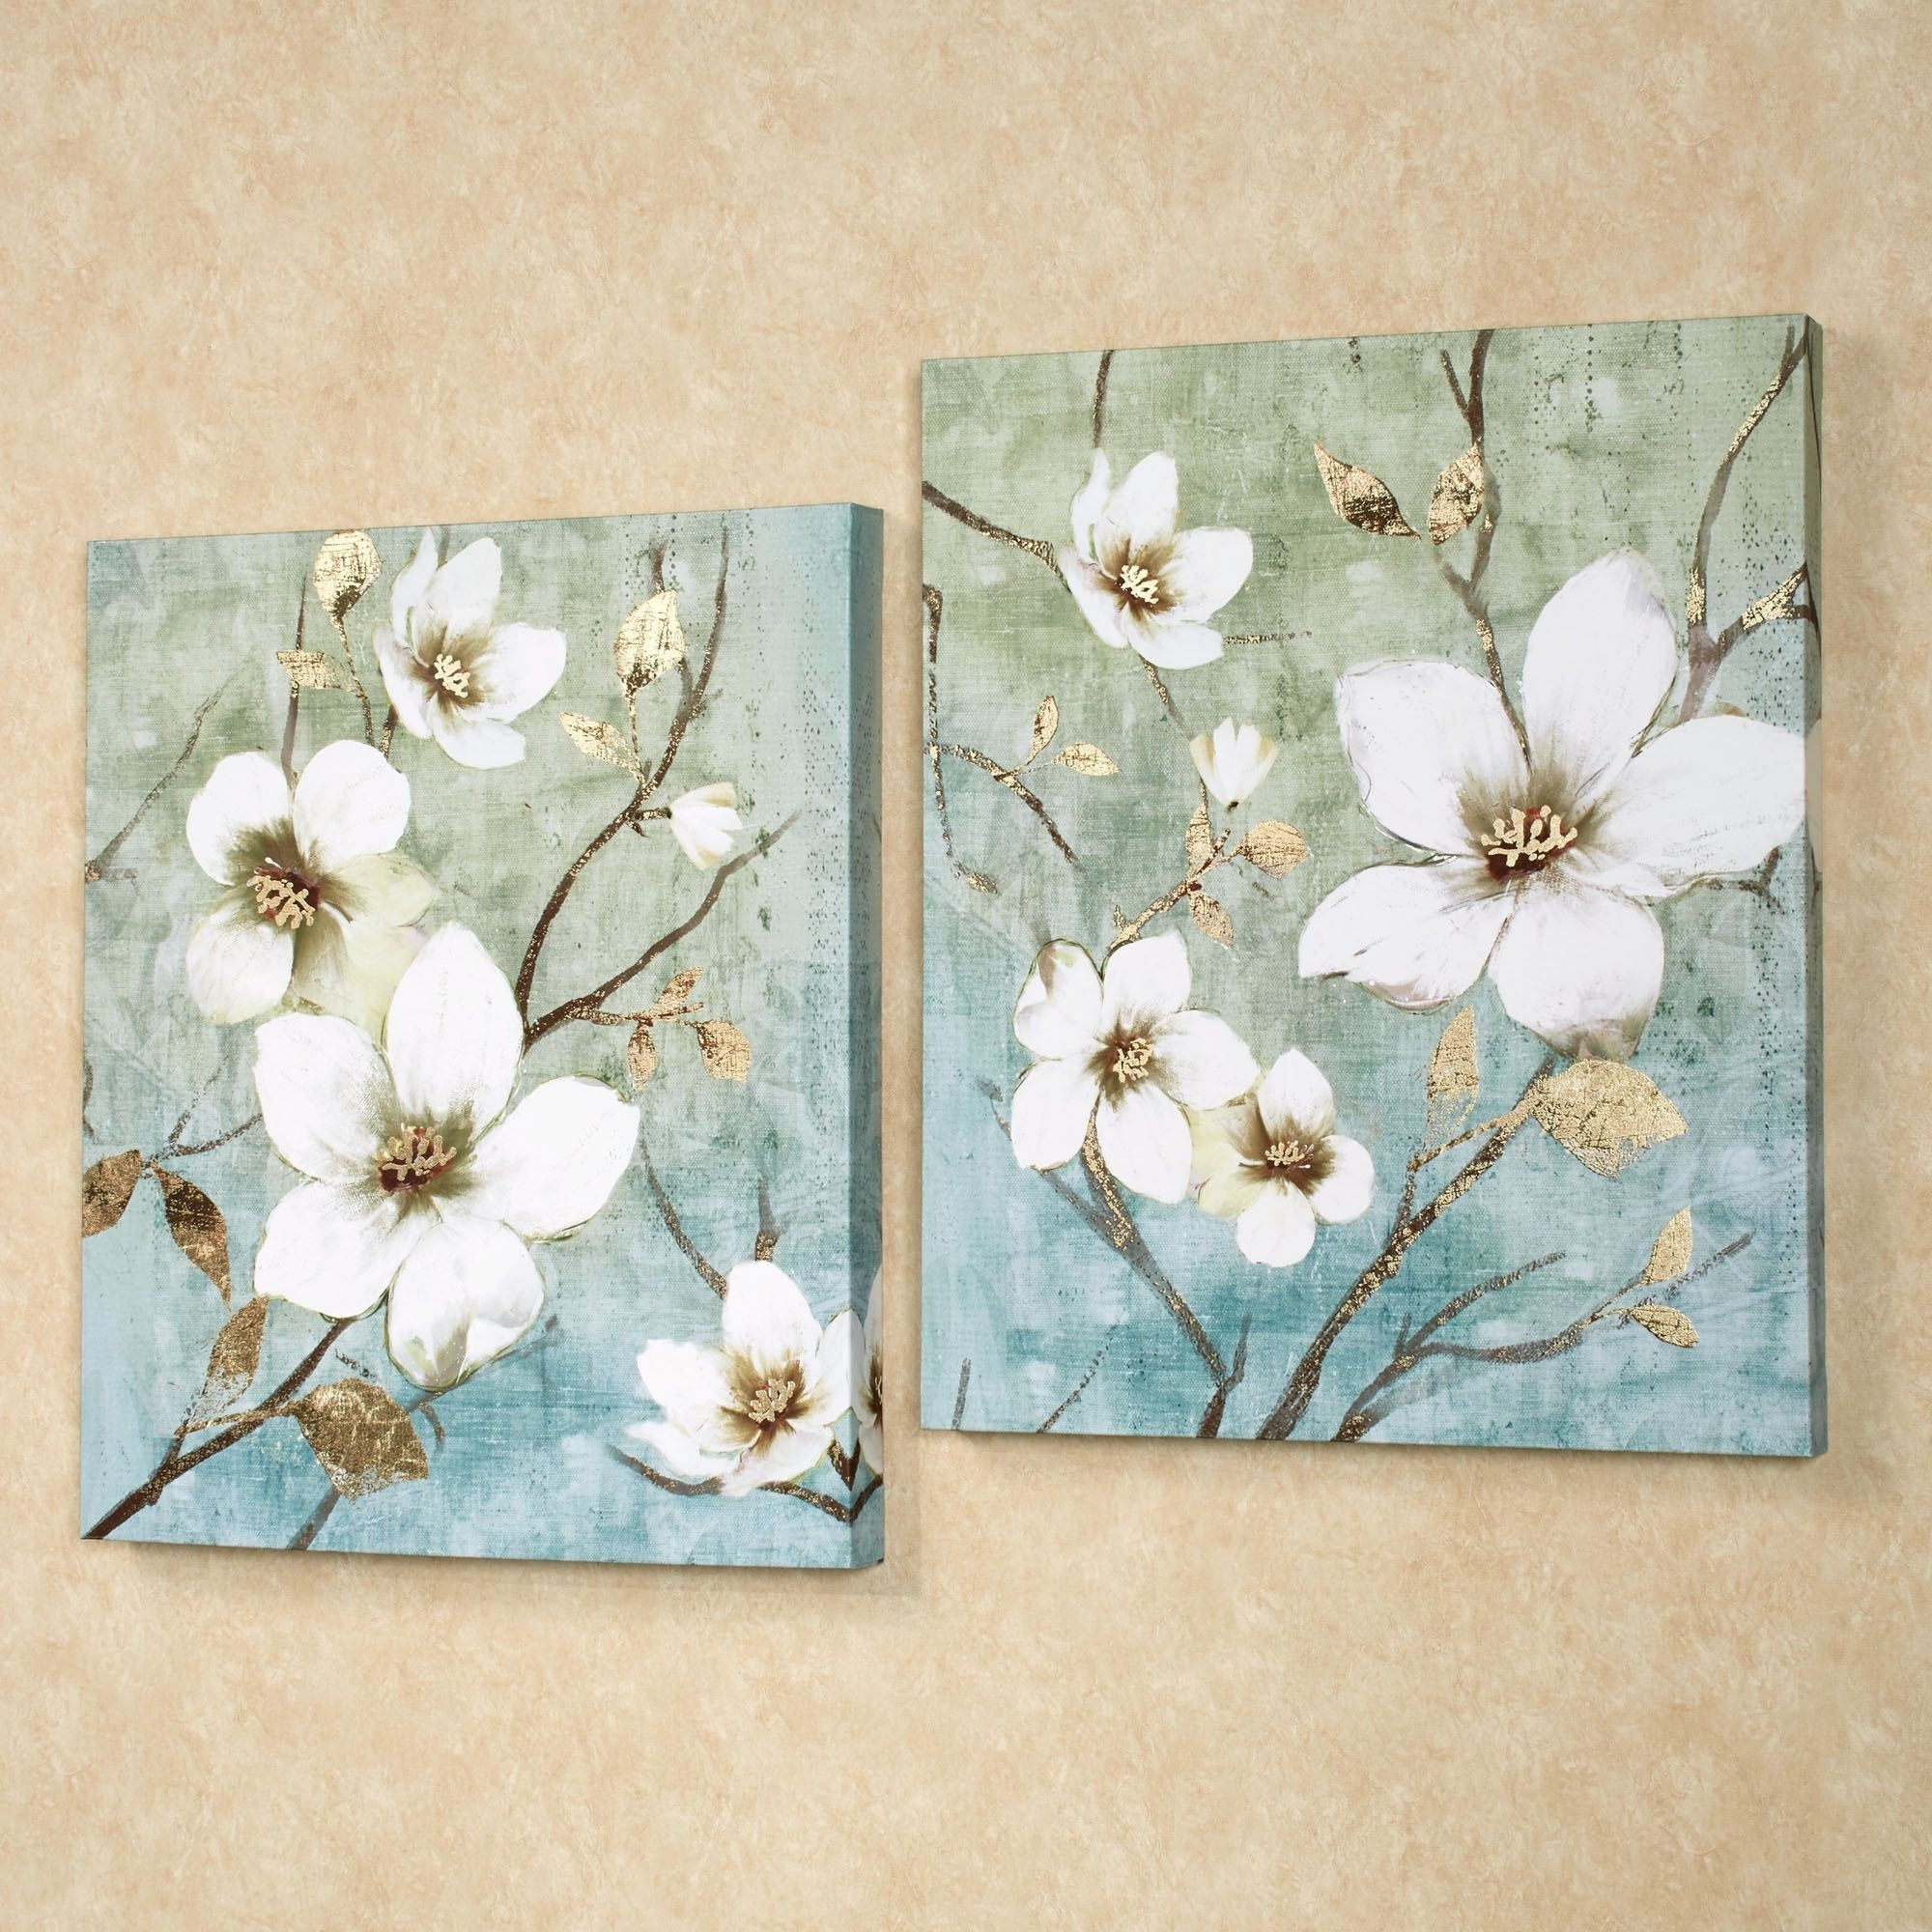 In Bloom Floral Canvas Wall Art Set With Regard To Recent Floral Canvas Wall Art (View 11 of 20)